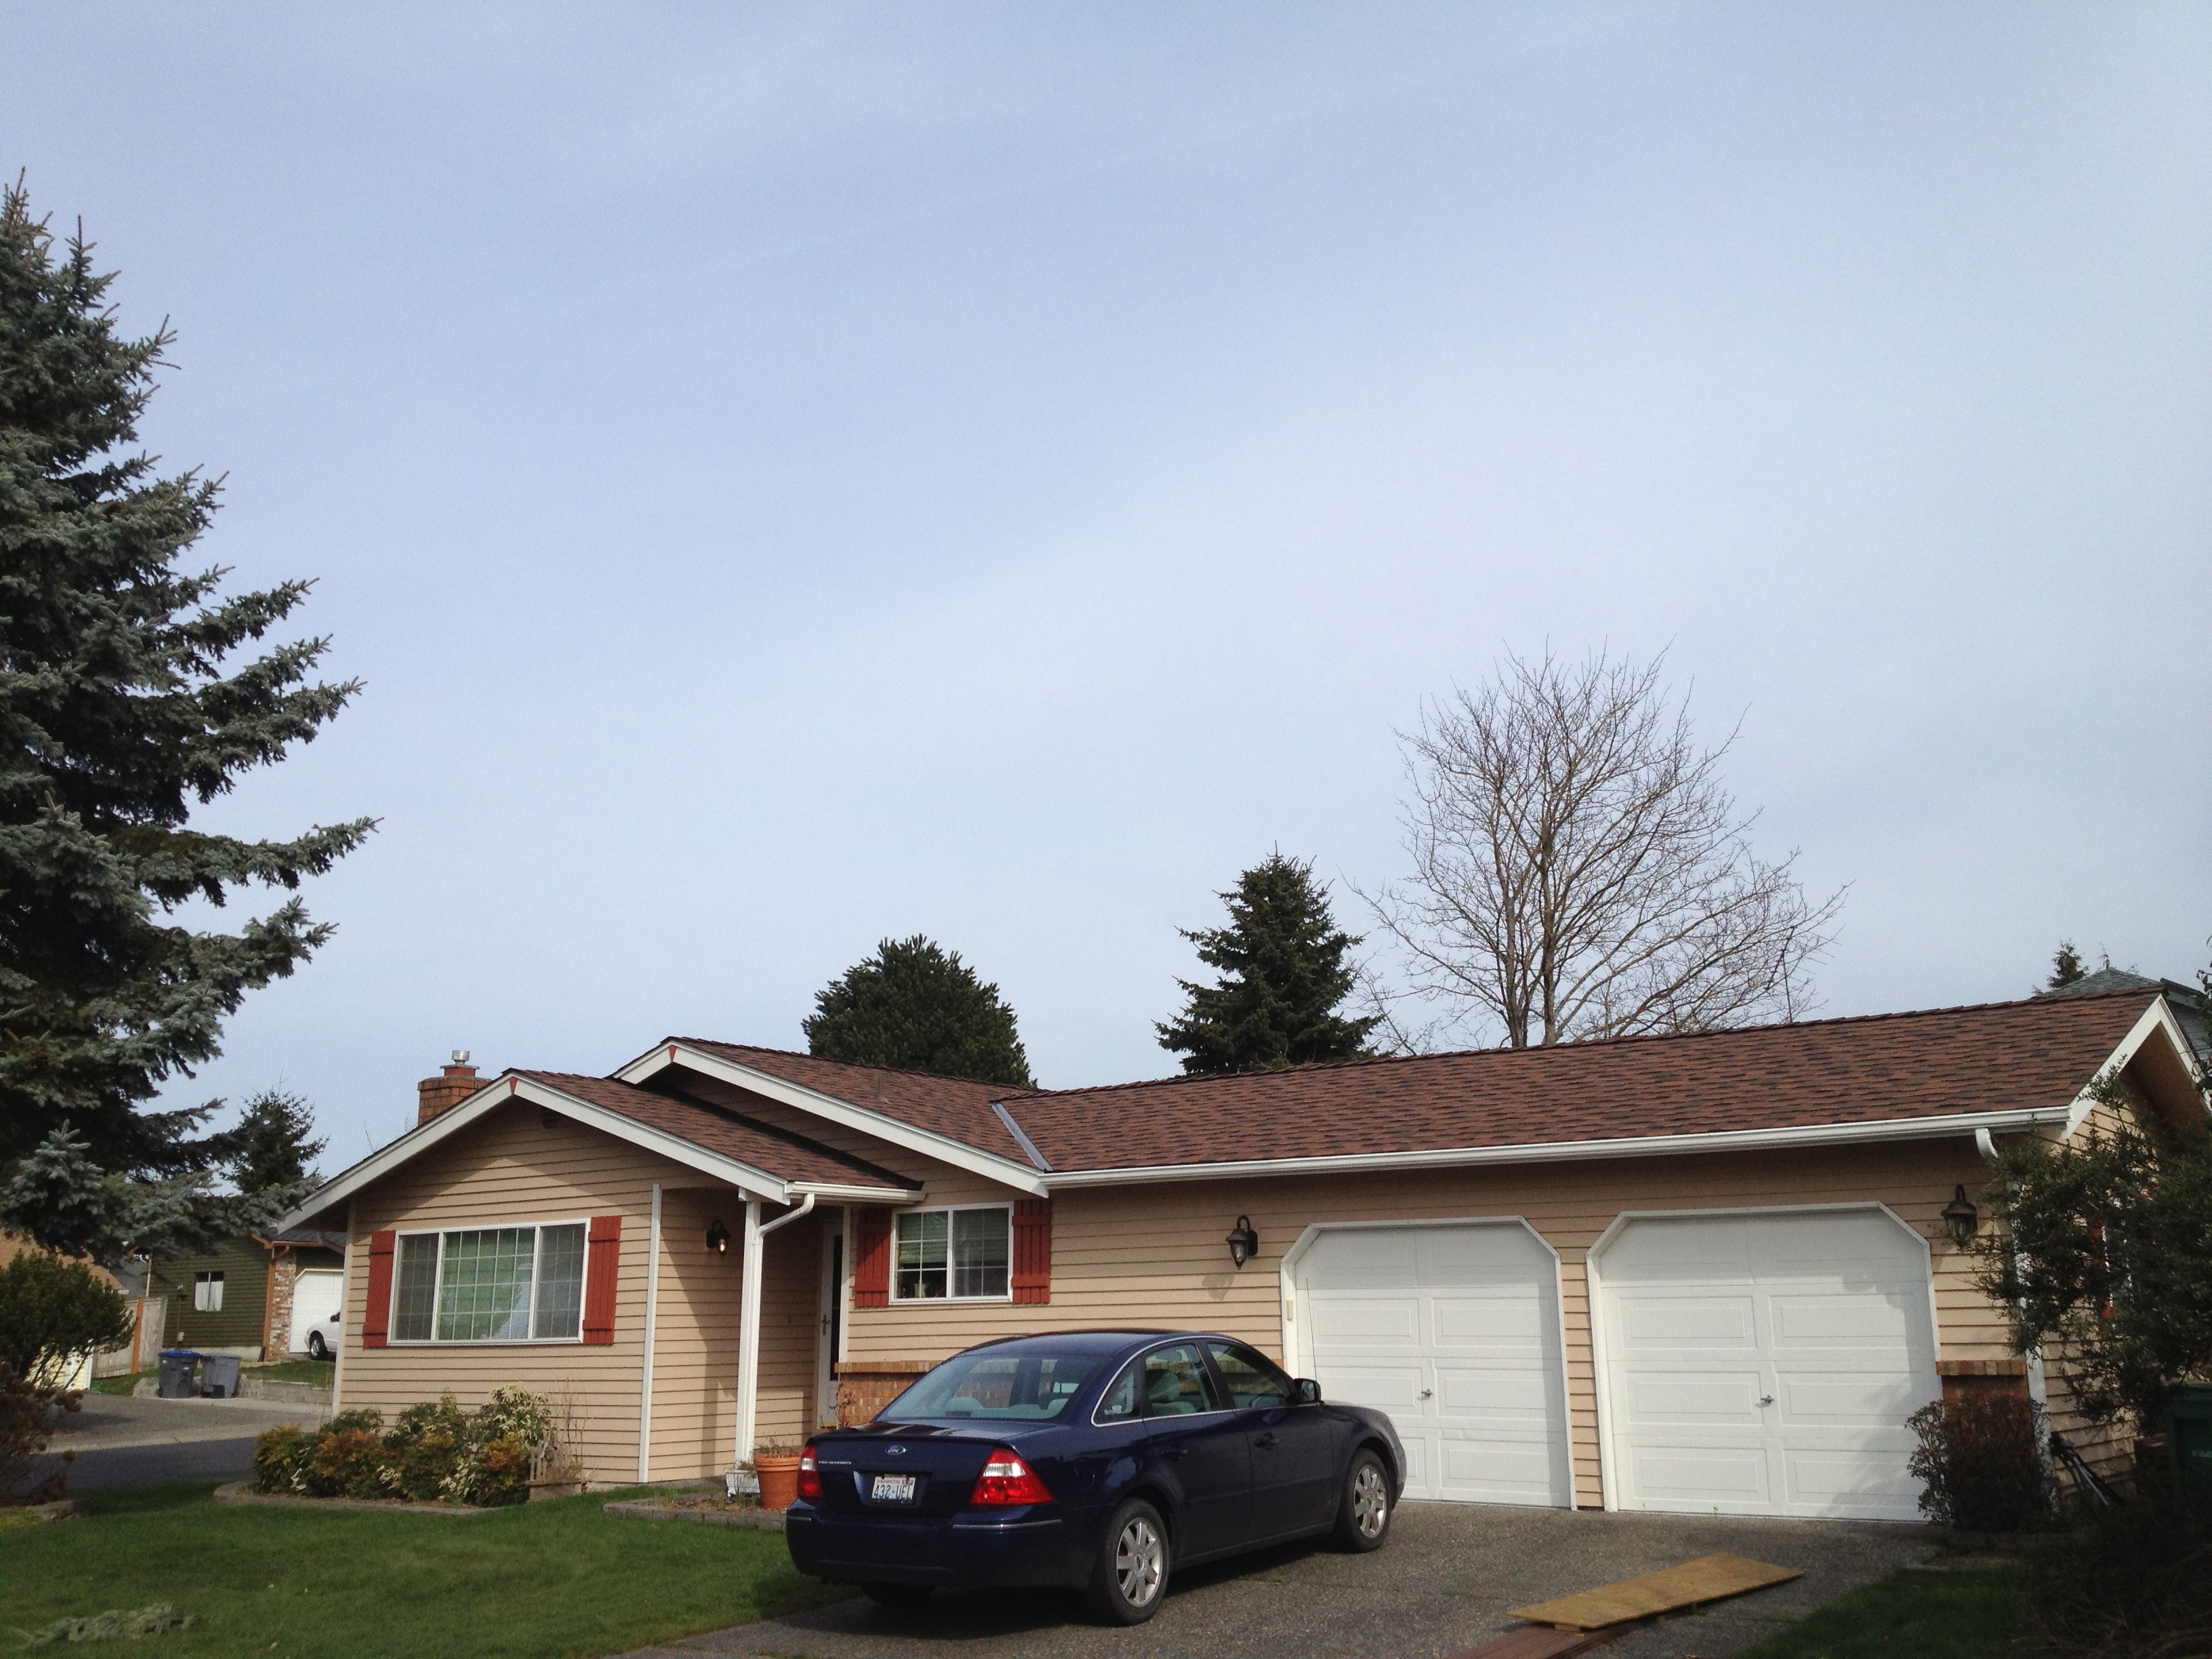 Roofing Contractor In Lakewood Wa 253 445 8950 Chase